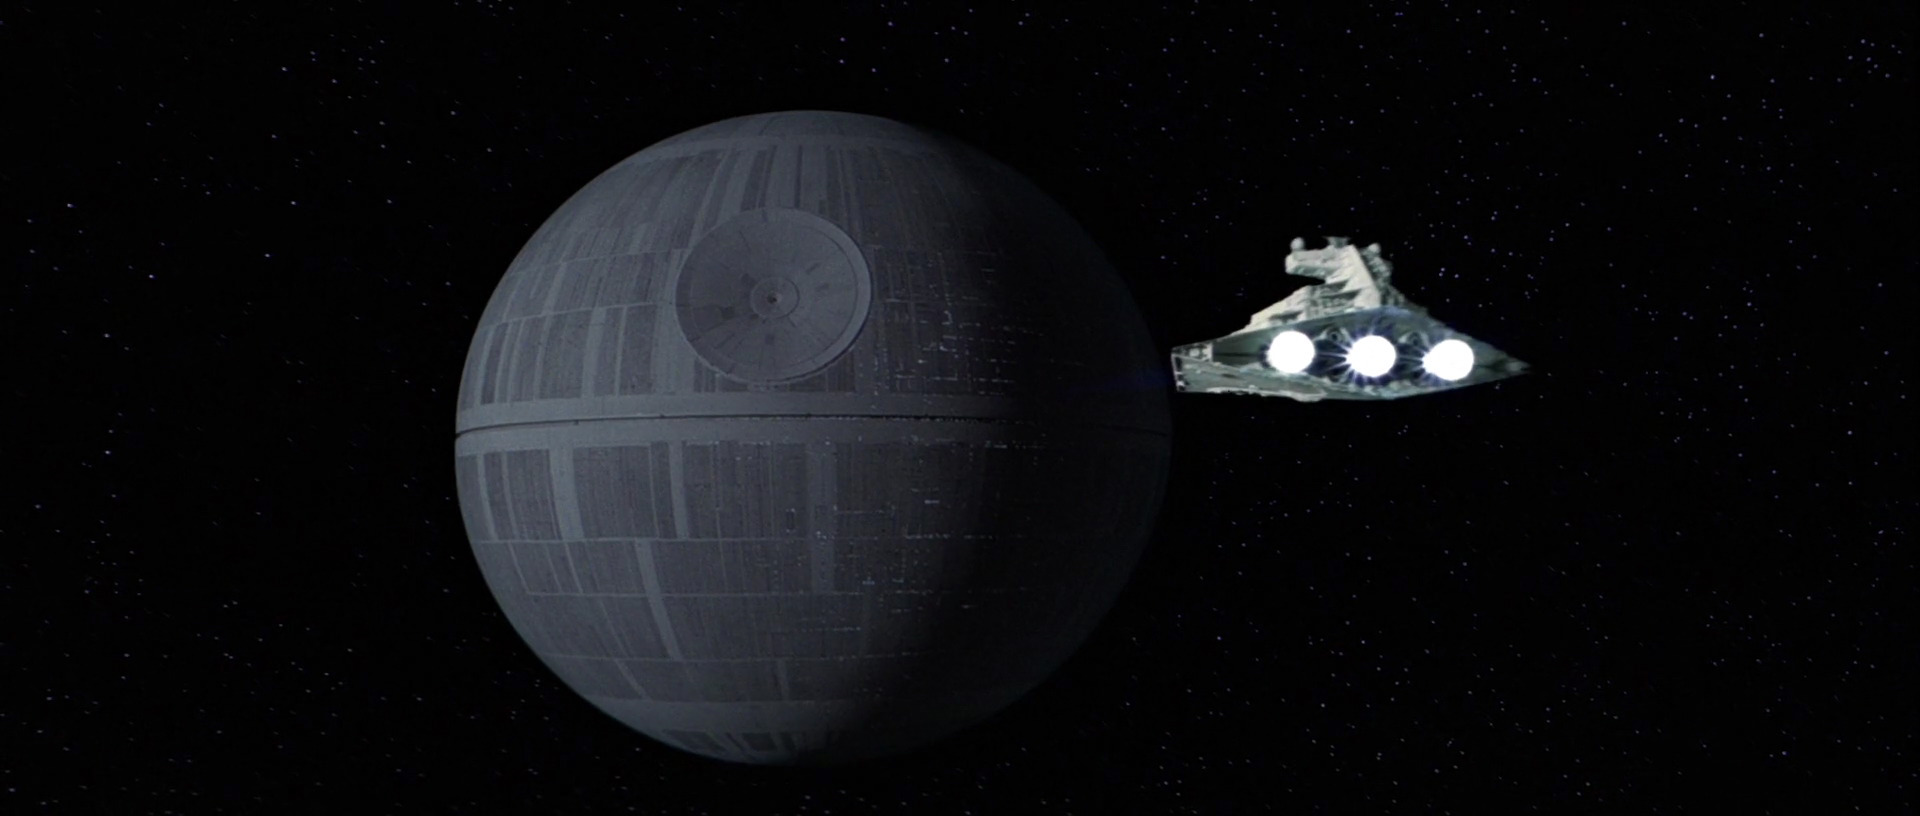 Free Download 3d Wallpapers For Windows 7 Desktop The Star Wars Super Weapon Guide From The Death Star To